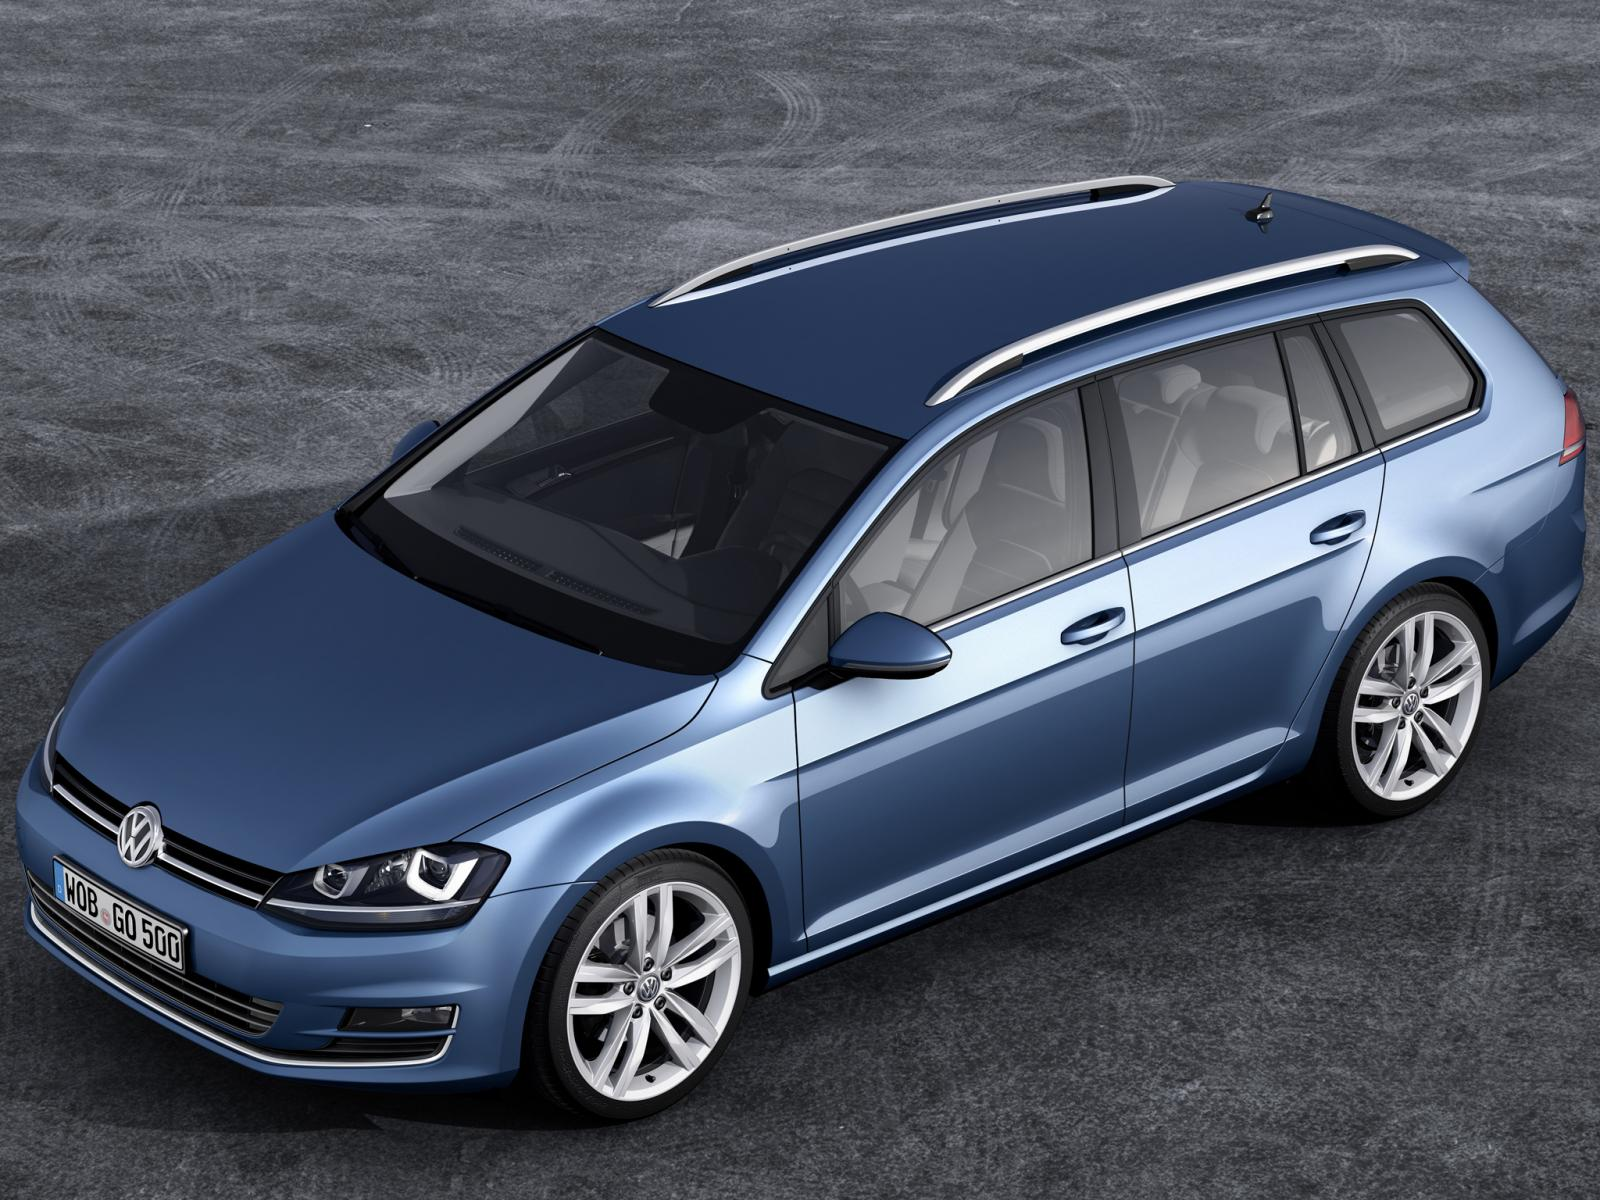 volkswagen golf vii variant specs photos 2013 2014 2015 2016 2017 autoevolution. Black Bedroom Furniture Sets. Home Design Ideas